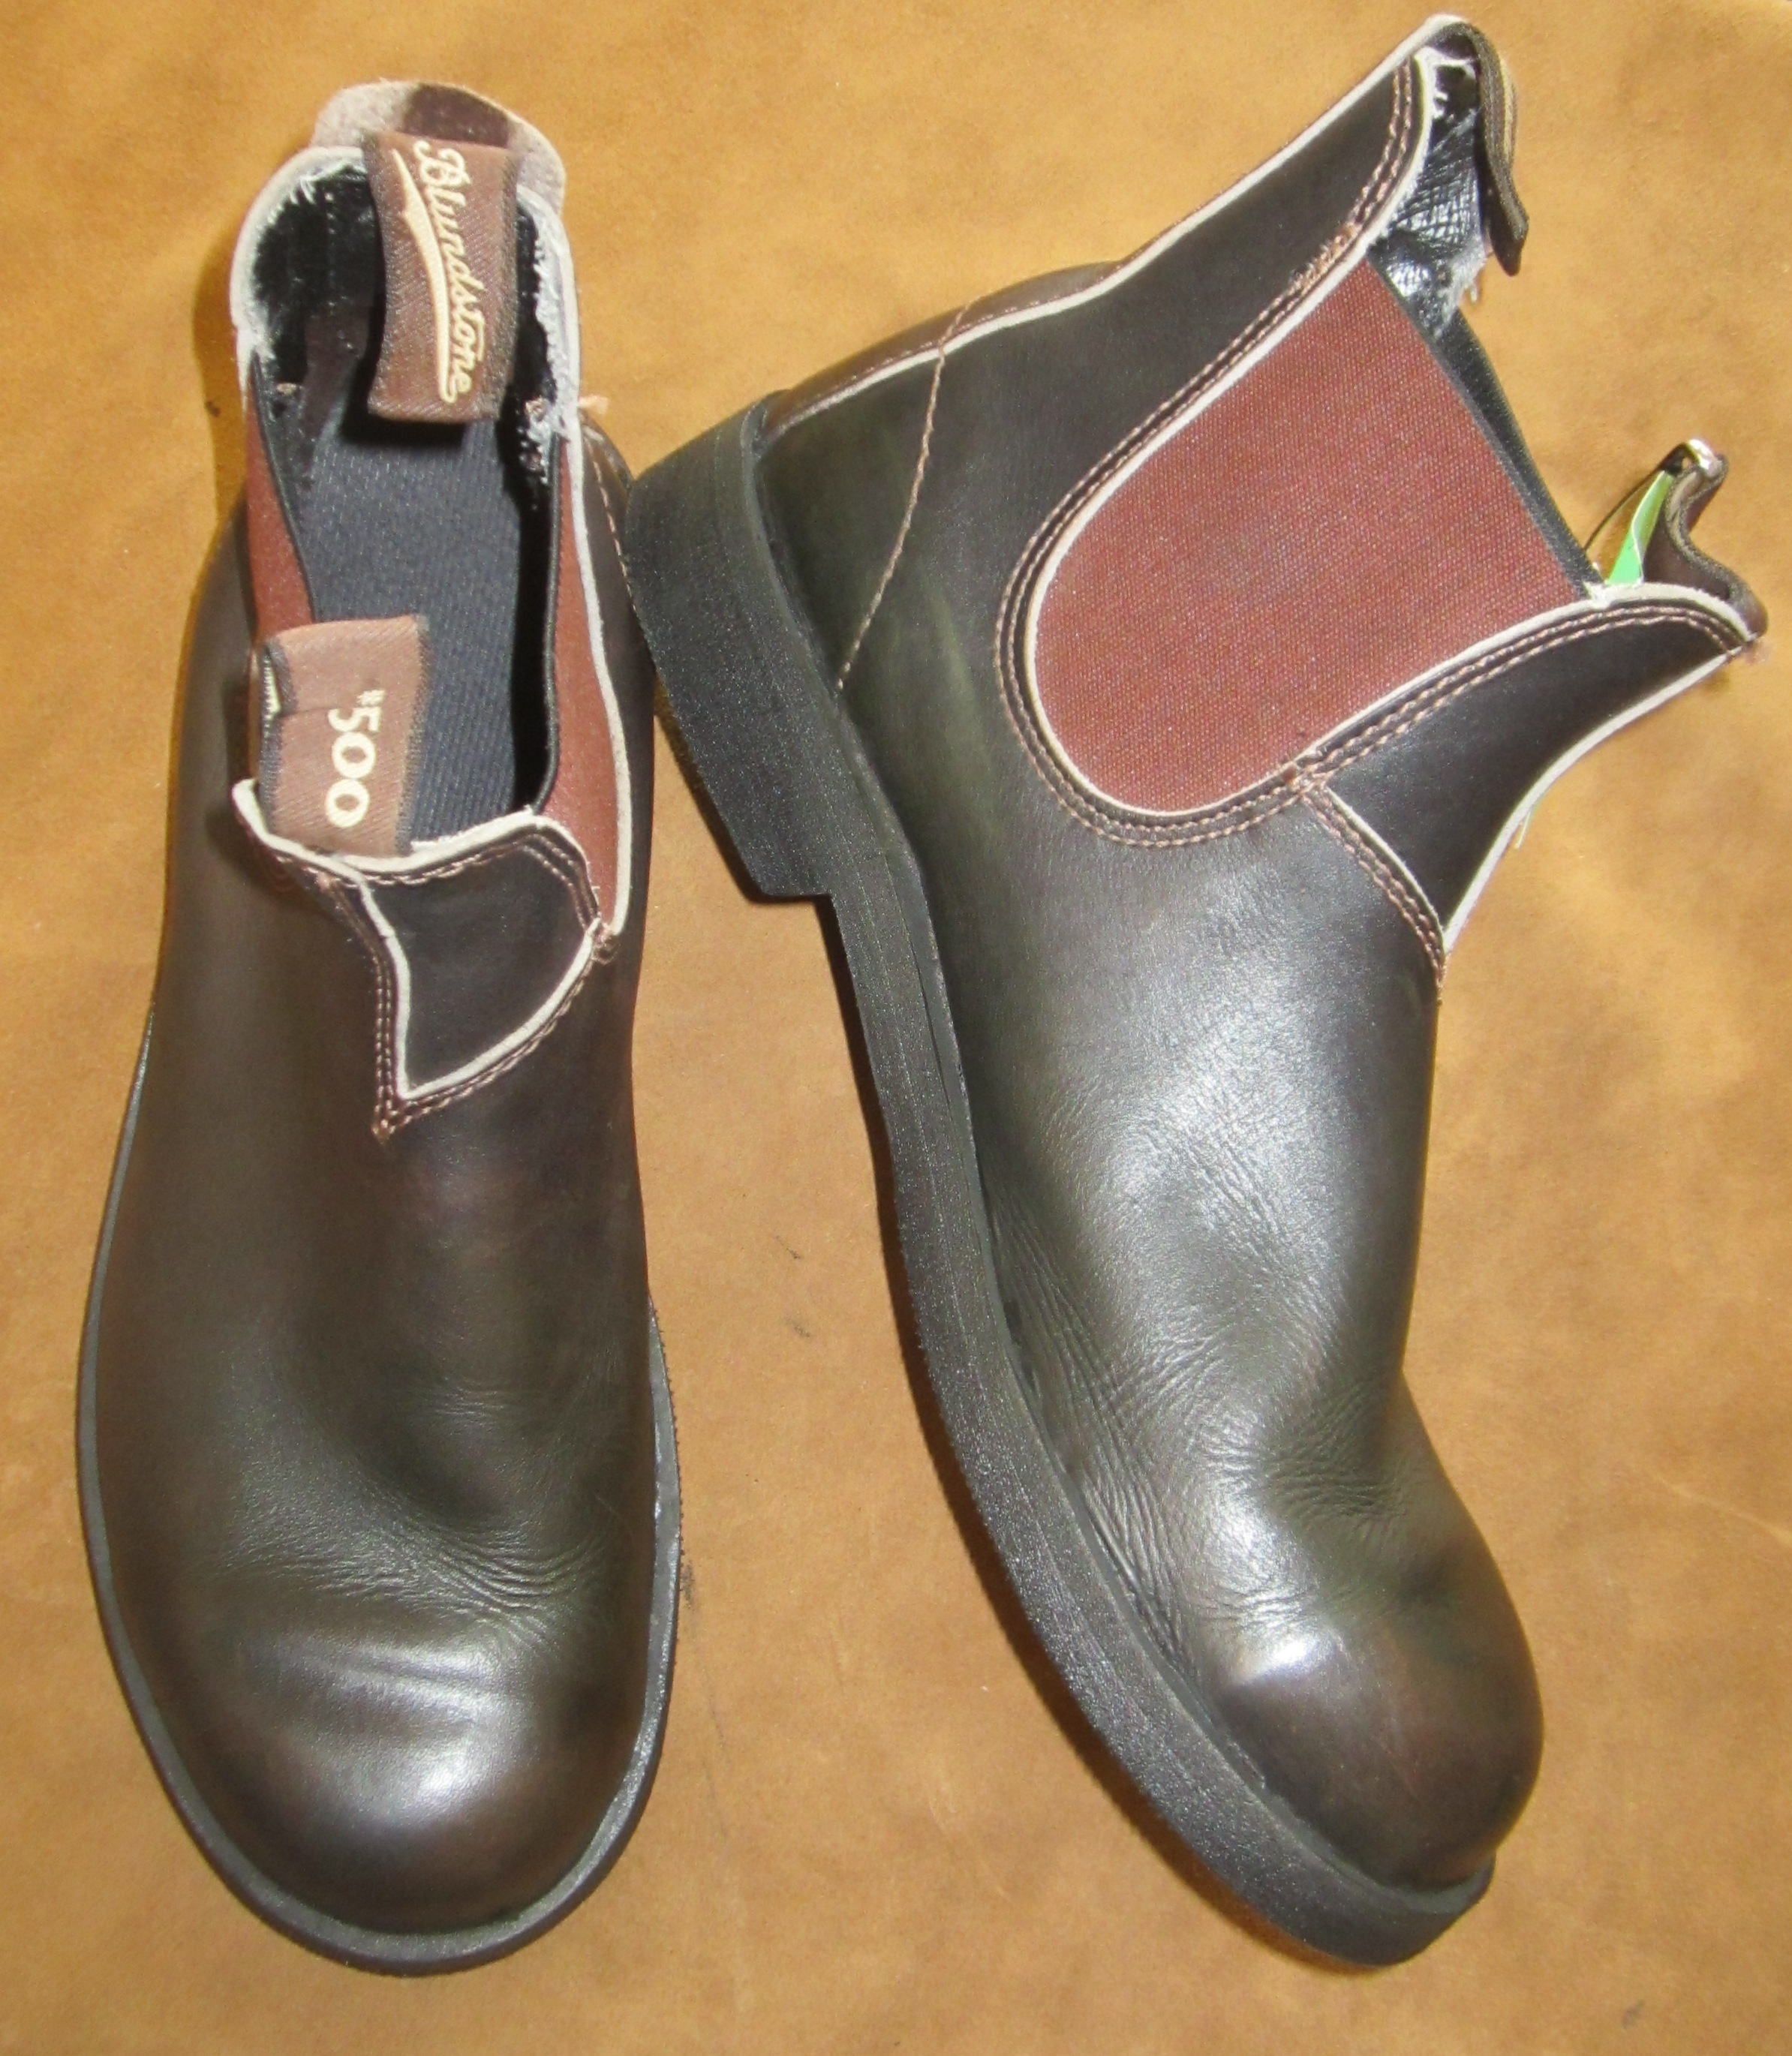 Blundstones resoled with smooth Vibram 1716 soles